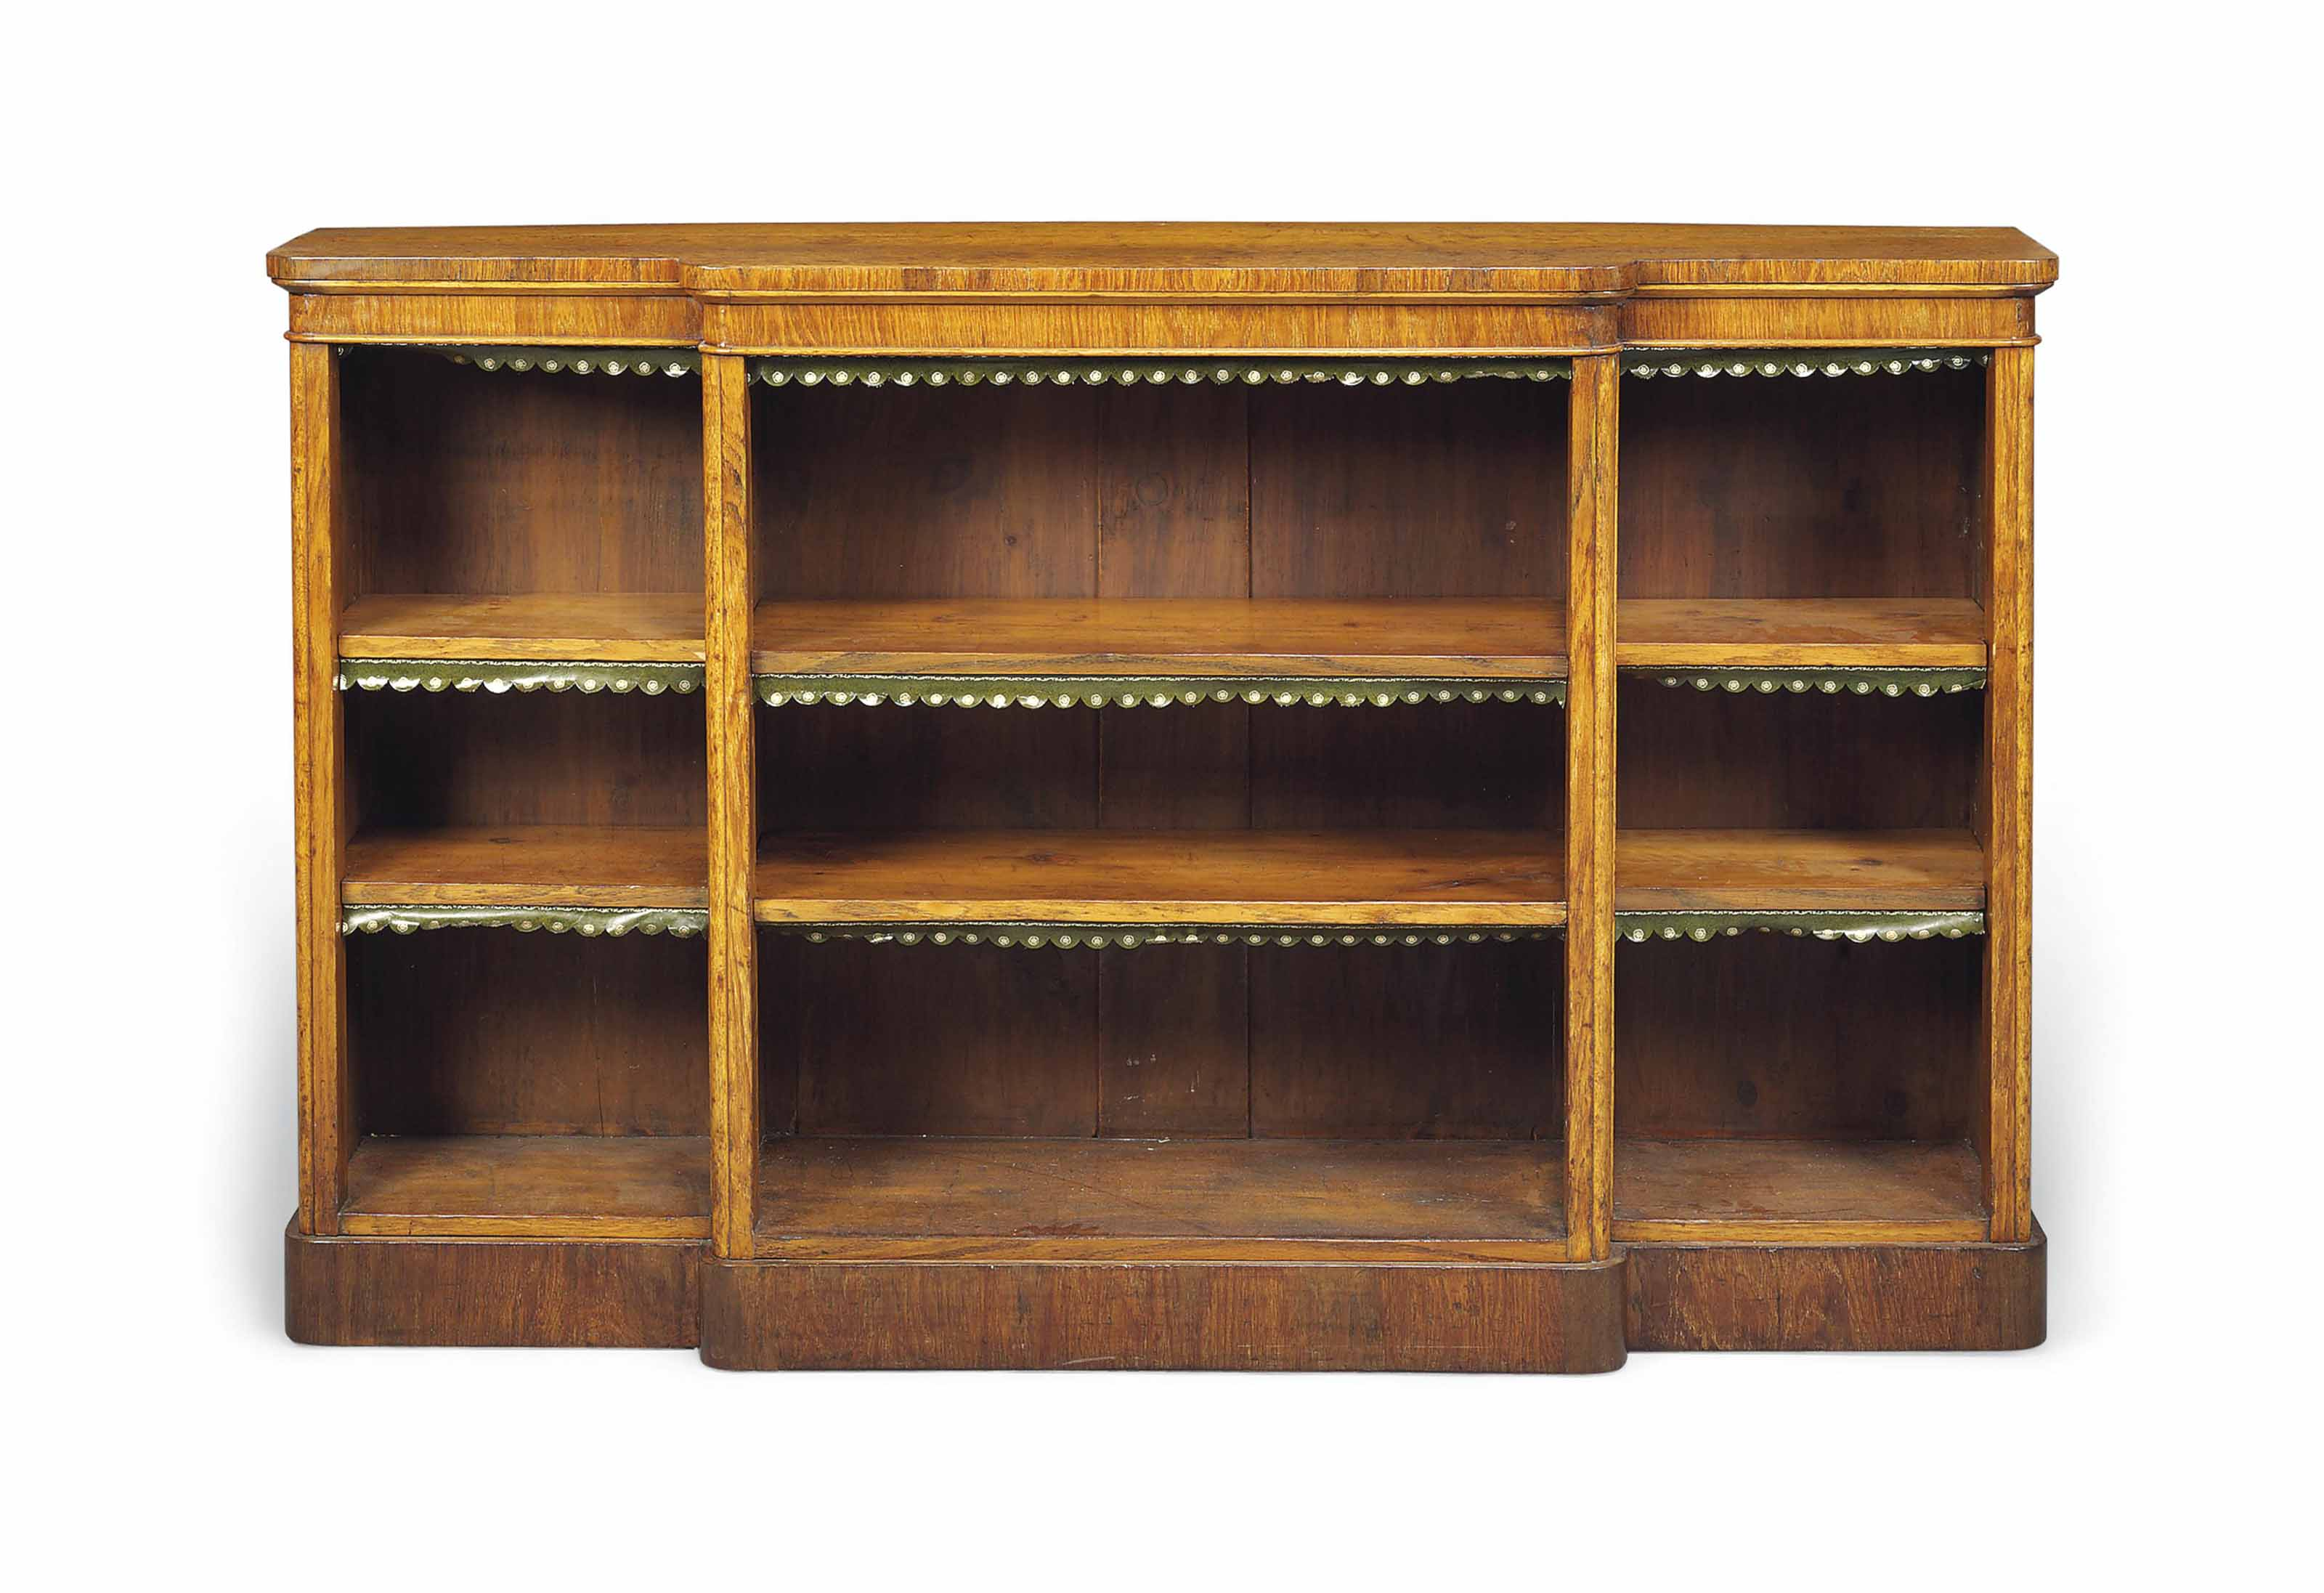 A VICTORIAN OAK BREAKFRONT OPEN BOOKCASE